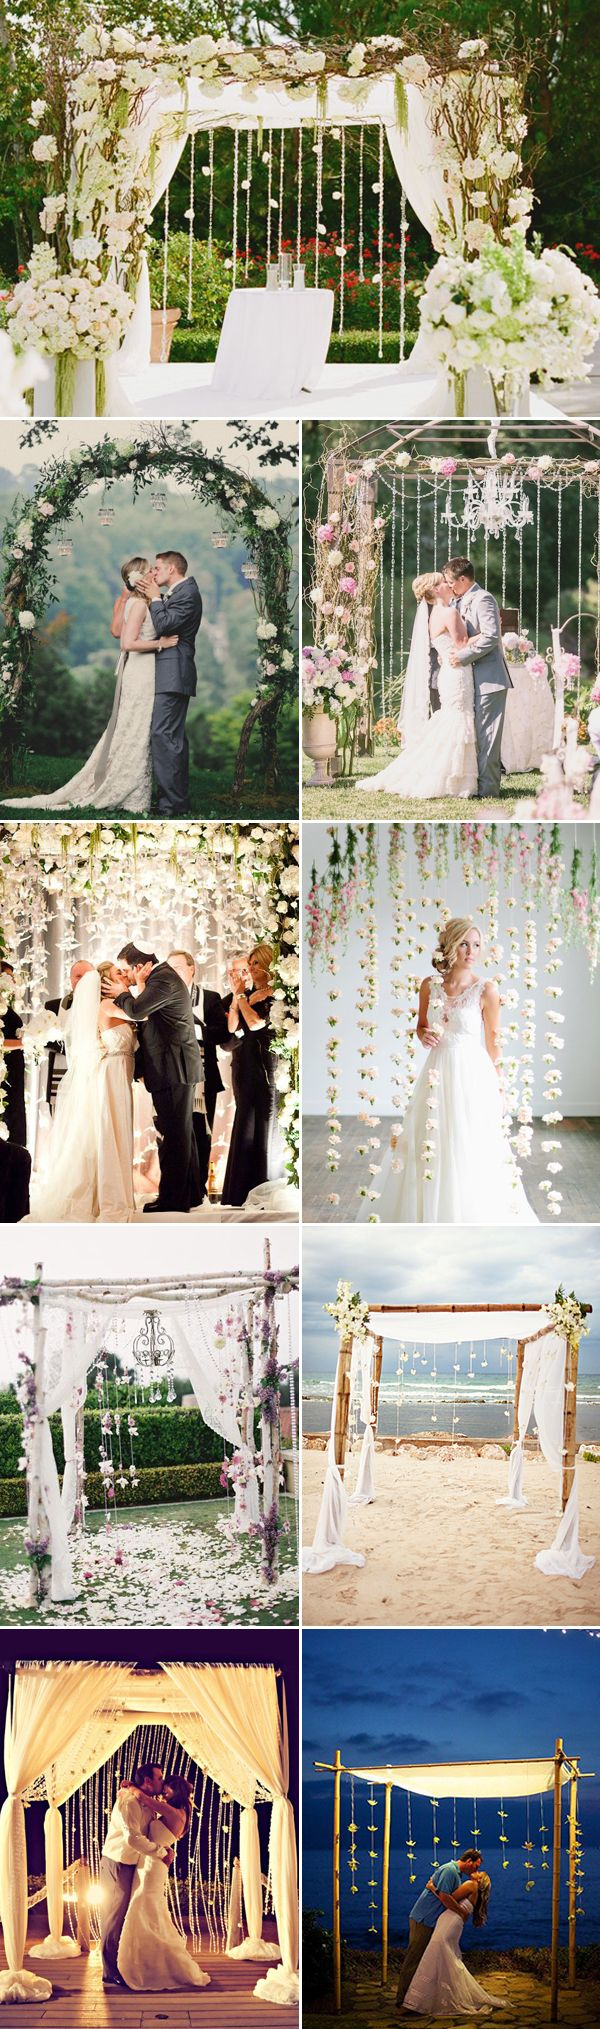 Wedding white and Wedding Ideas Arches Decorations    Arch    Arches Arch Beautiful Decoration privo Wedding shoes